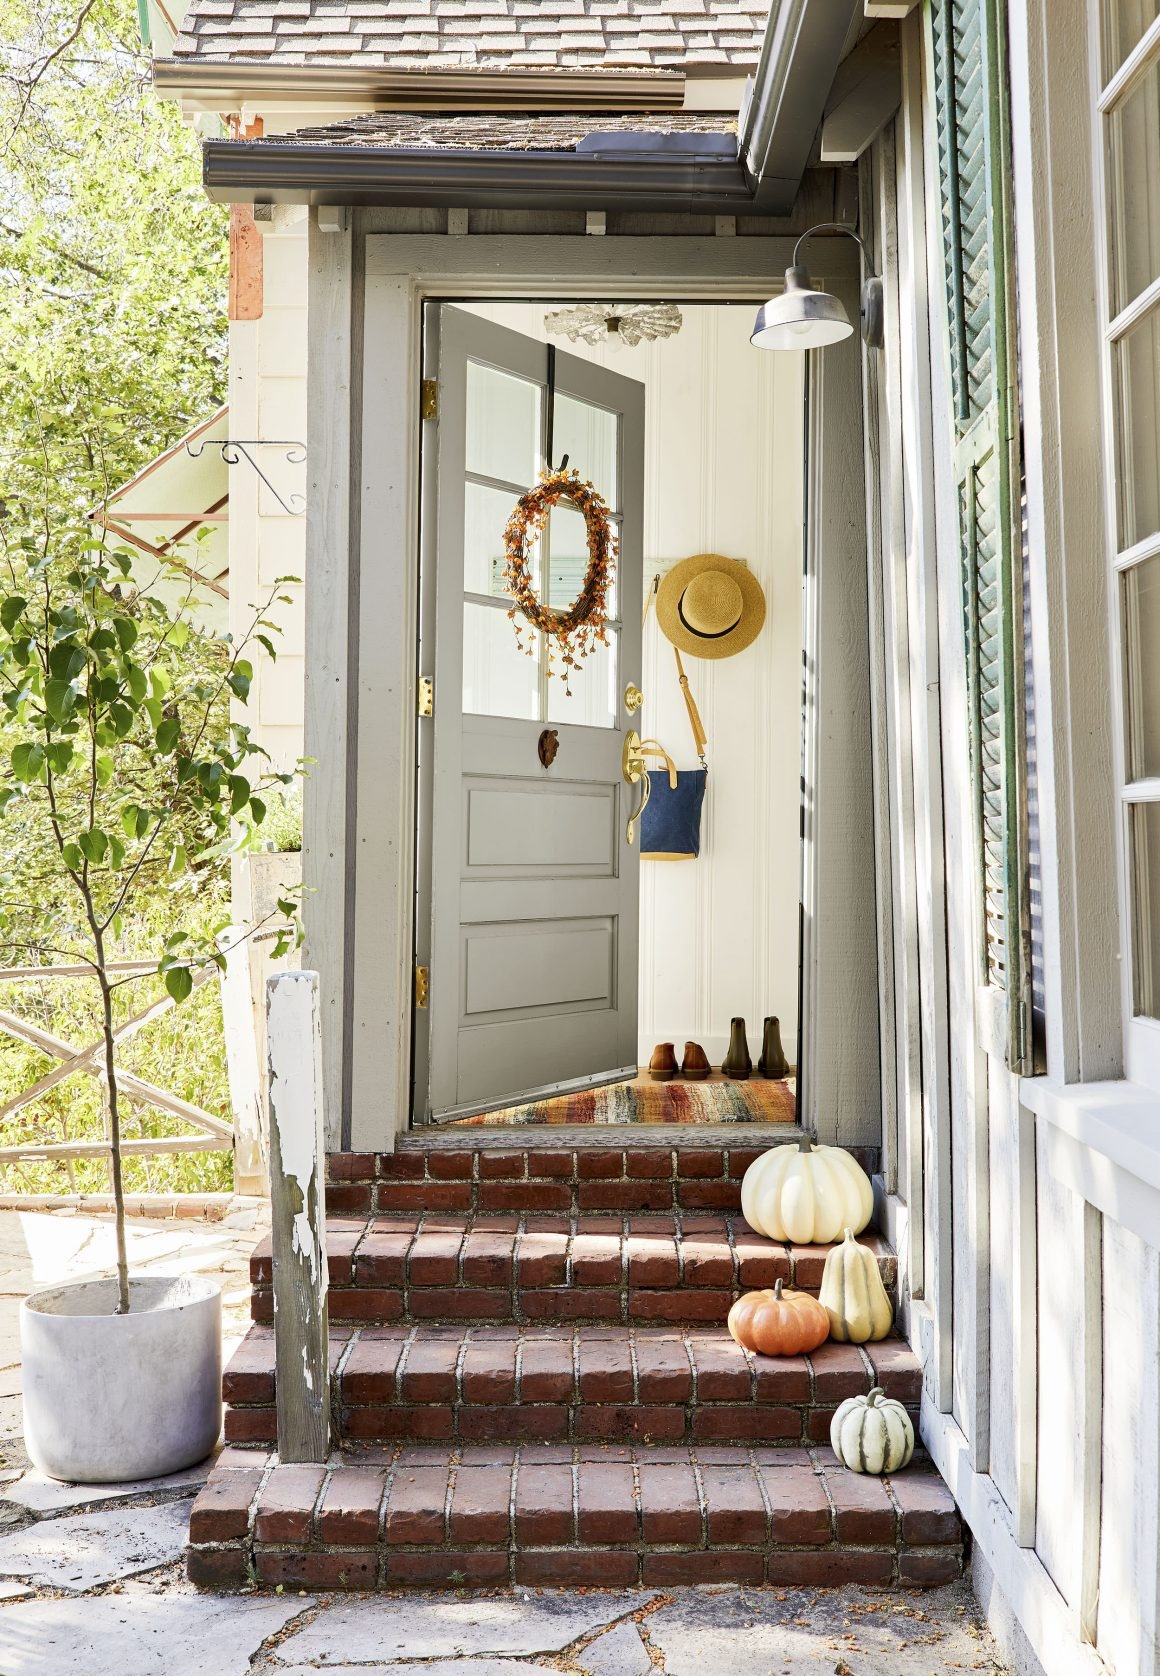 Beautiful Fall Wreath on Door, from Target